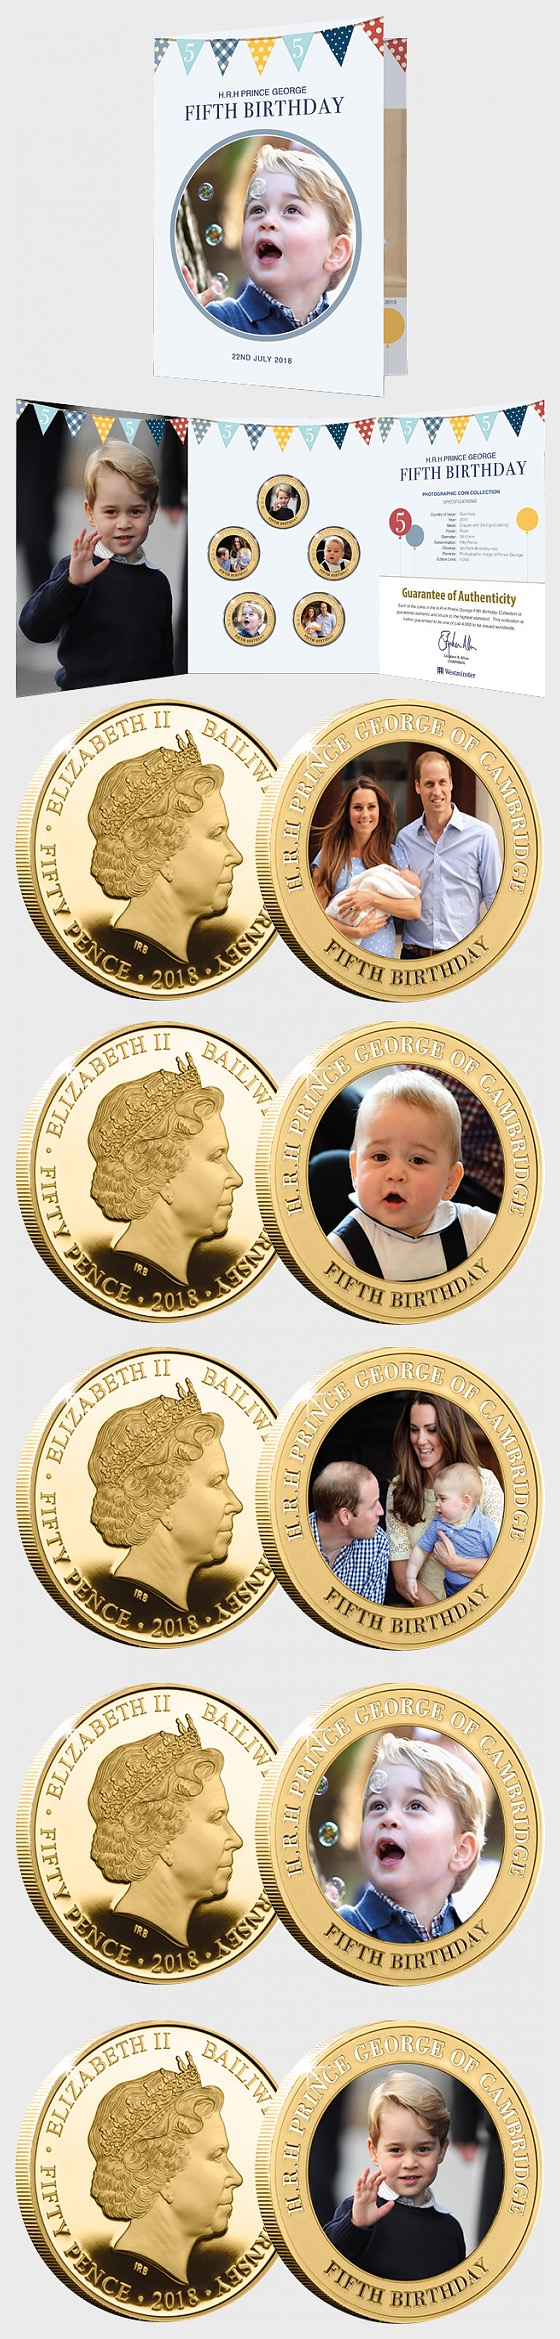 GUERNSEY - HRH Prince George's 5th Birthday Gold-plated Five Coin Set - Commemorative